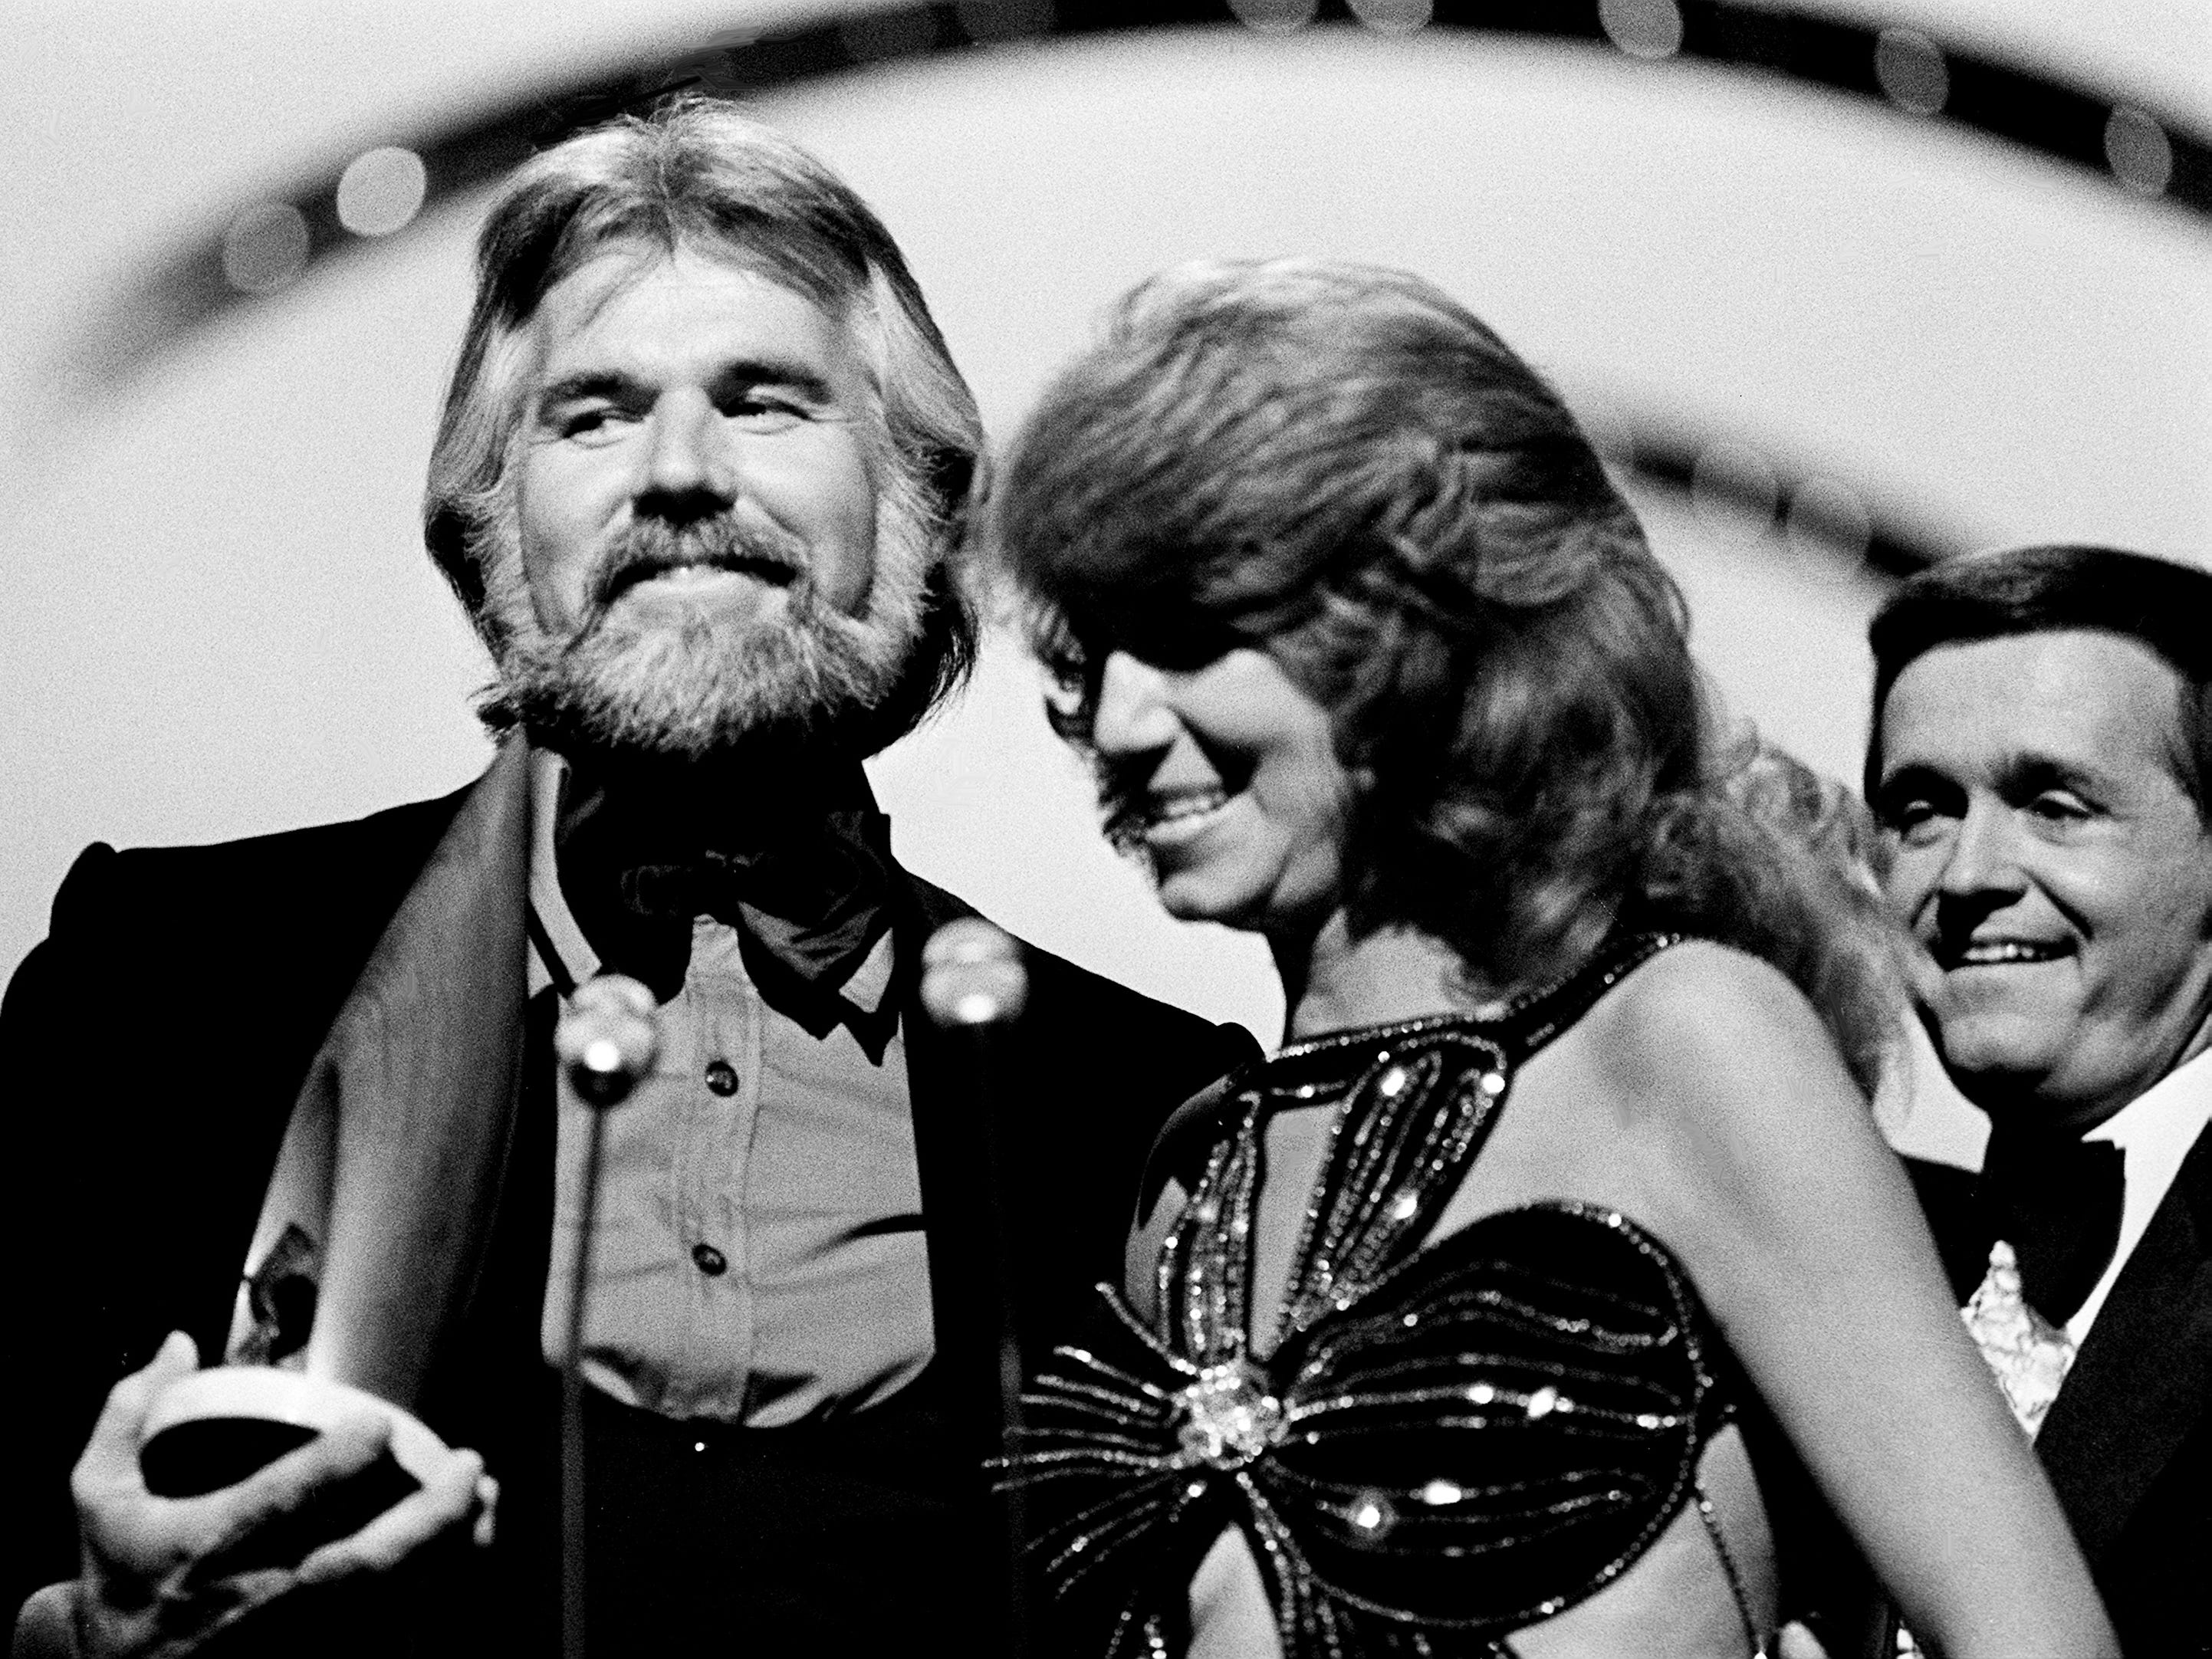 Kenny Rogers and Dottie West accept their Vocal Duo of the Year award during the 12th annual CMA Awards show at the Grand Ole Opry House. Looking on is presenter Bill Anderson, right.